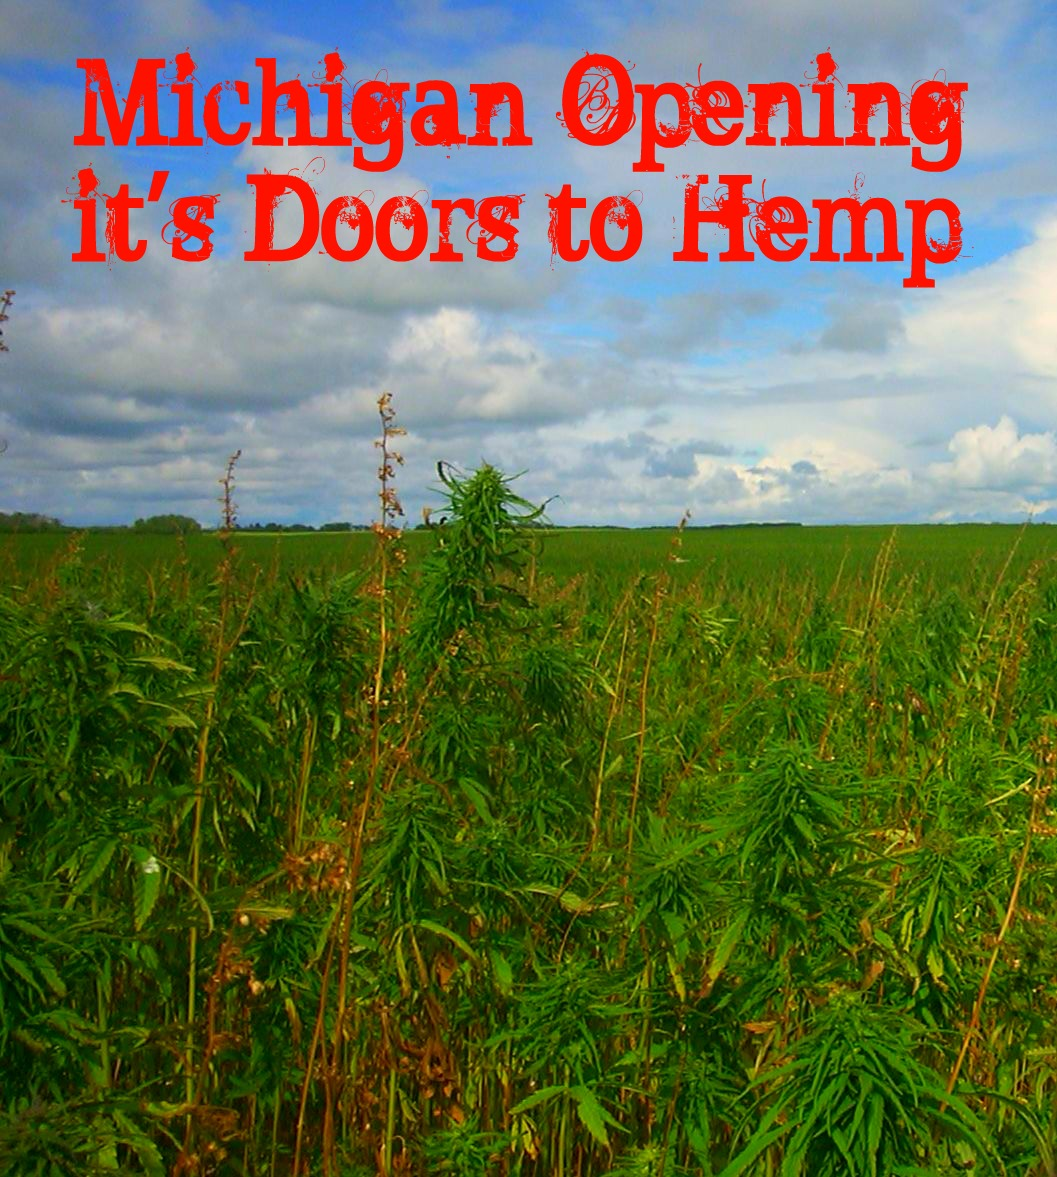 Michigan Legalizing Hemp Piece by Piece